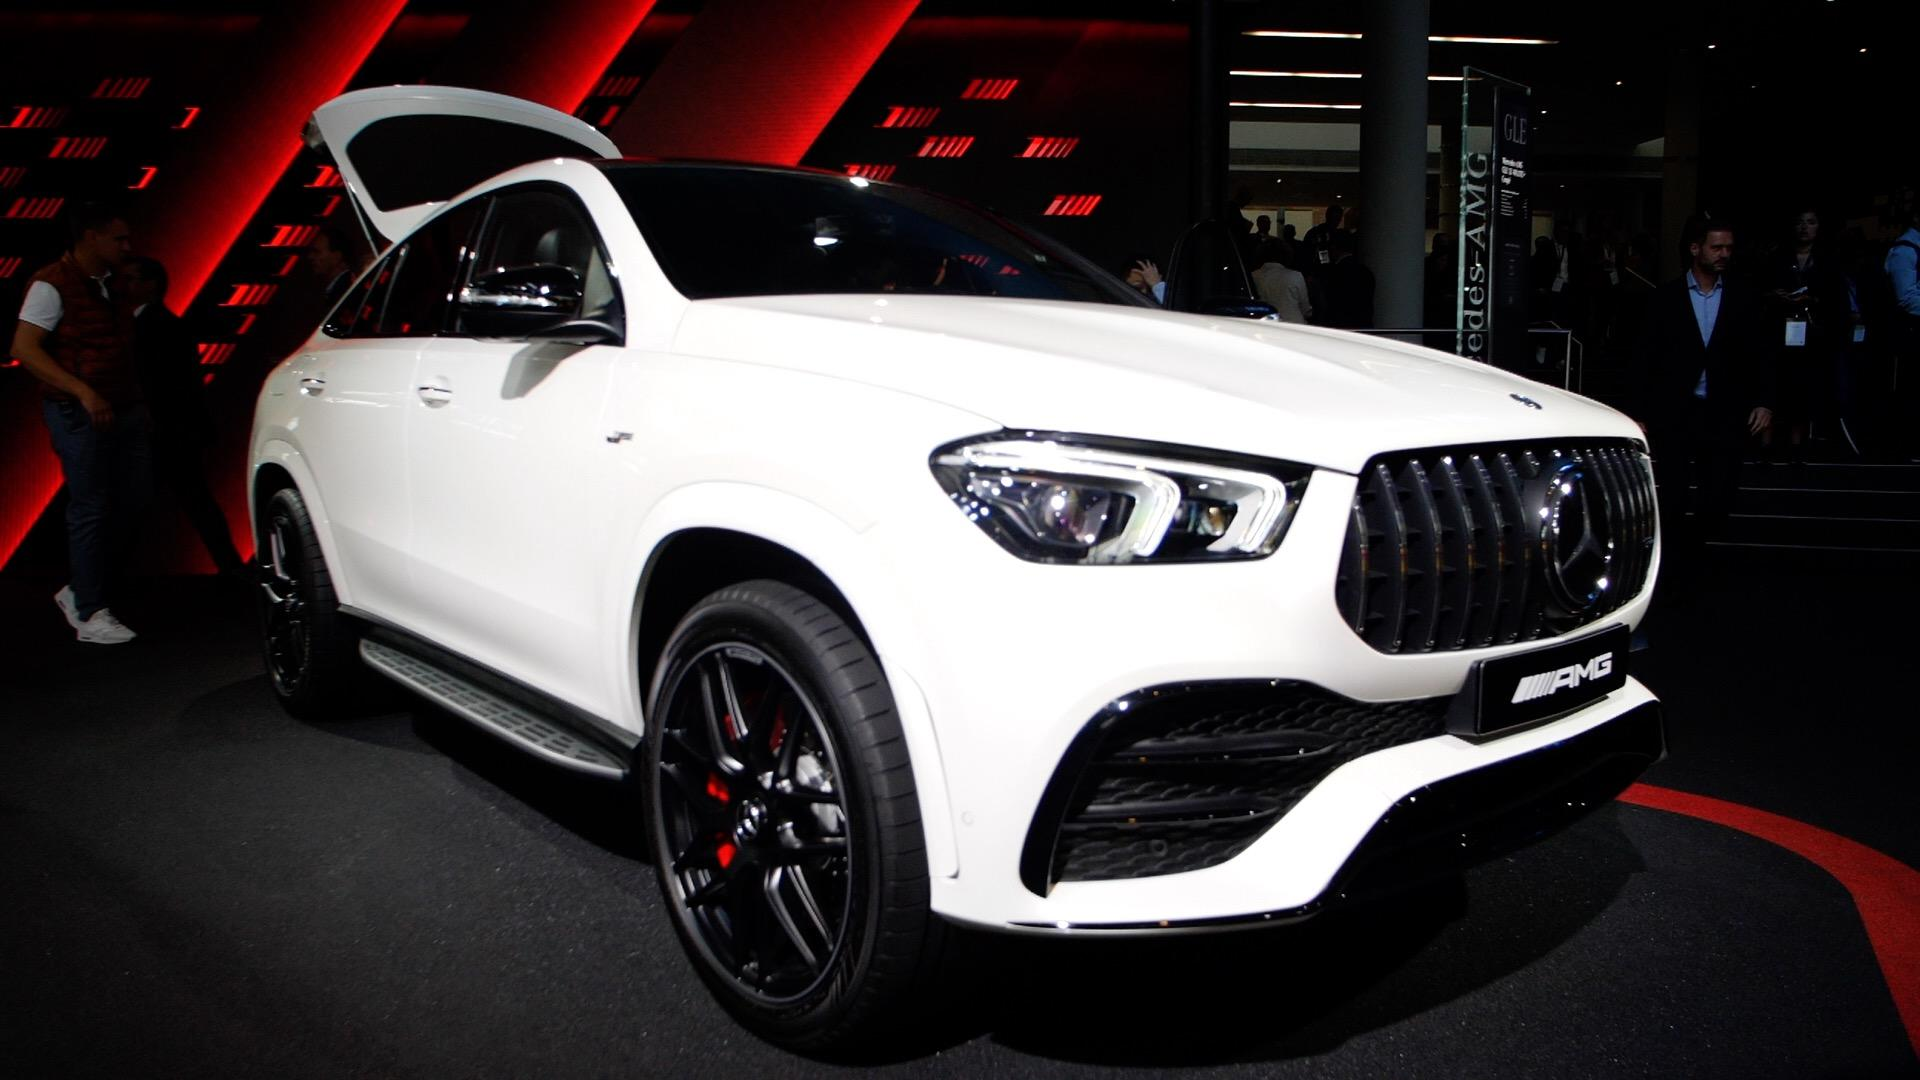 Video: 2021 Mercedes-AMG GLE53 Coupe: A sleeker GLE53... if you're into that